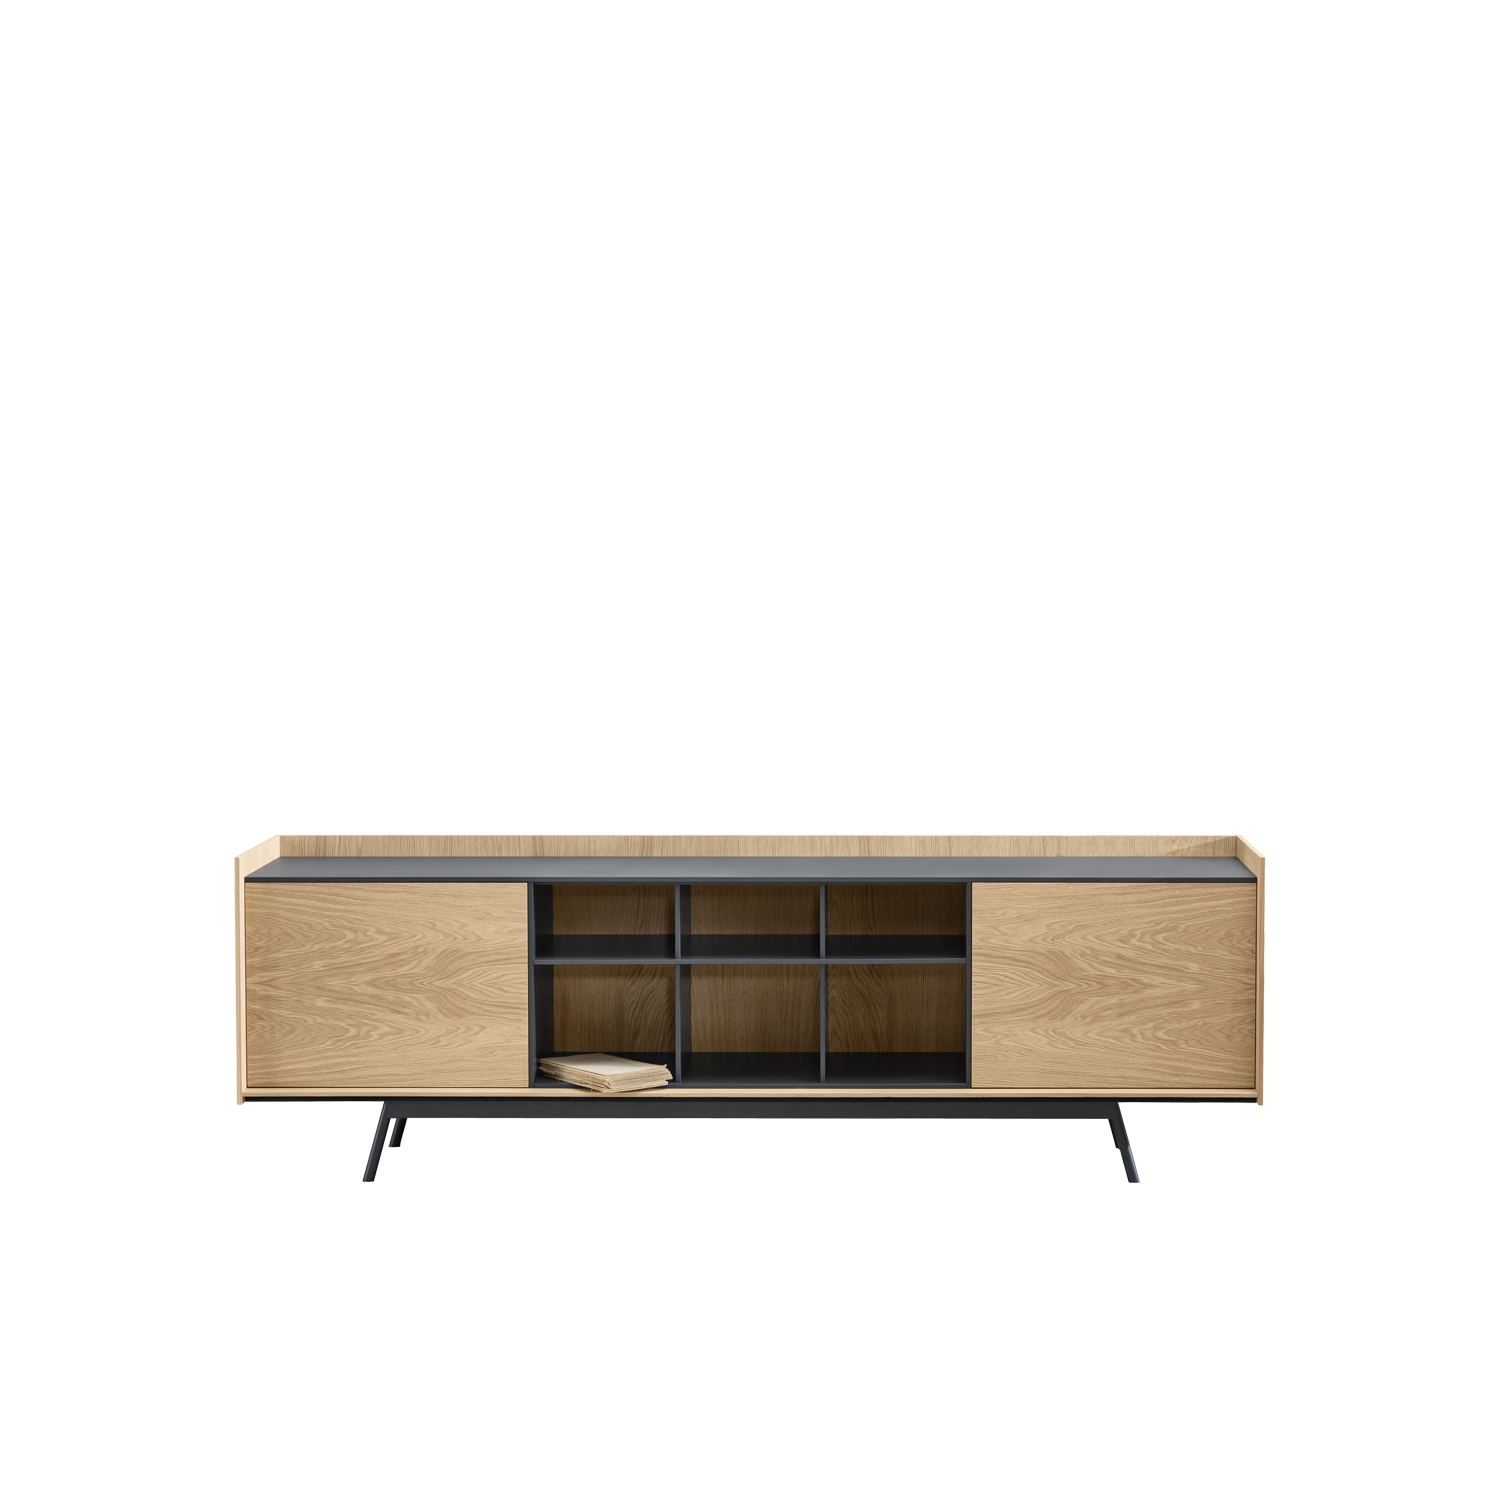 Edge Sideboard - Edge was created from a clear, essential approach to the concept of the sideboard. The neutral colours and the expressiveness of the wood give the item an autonomous, indispensable role in the living area.